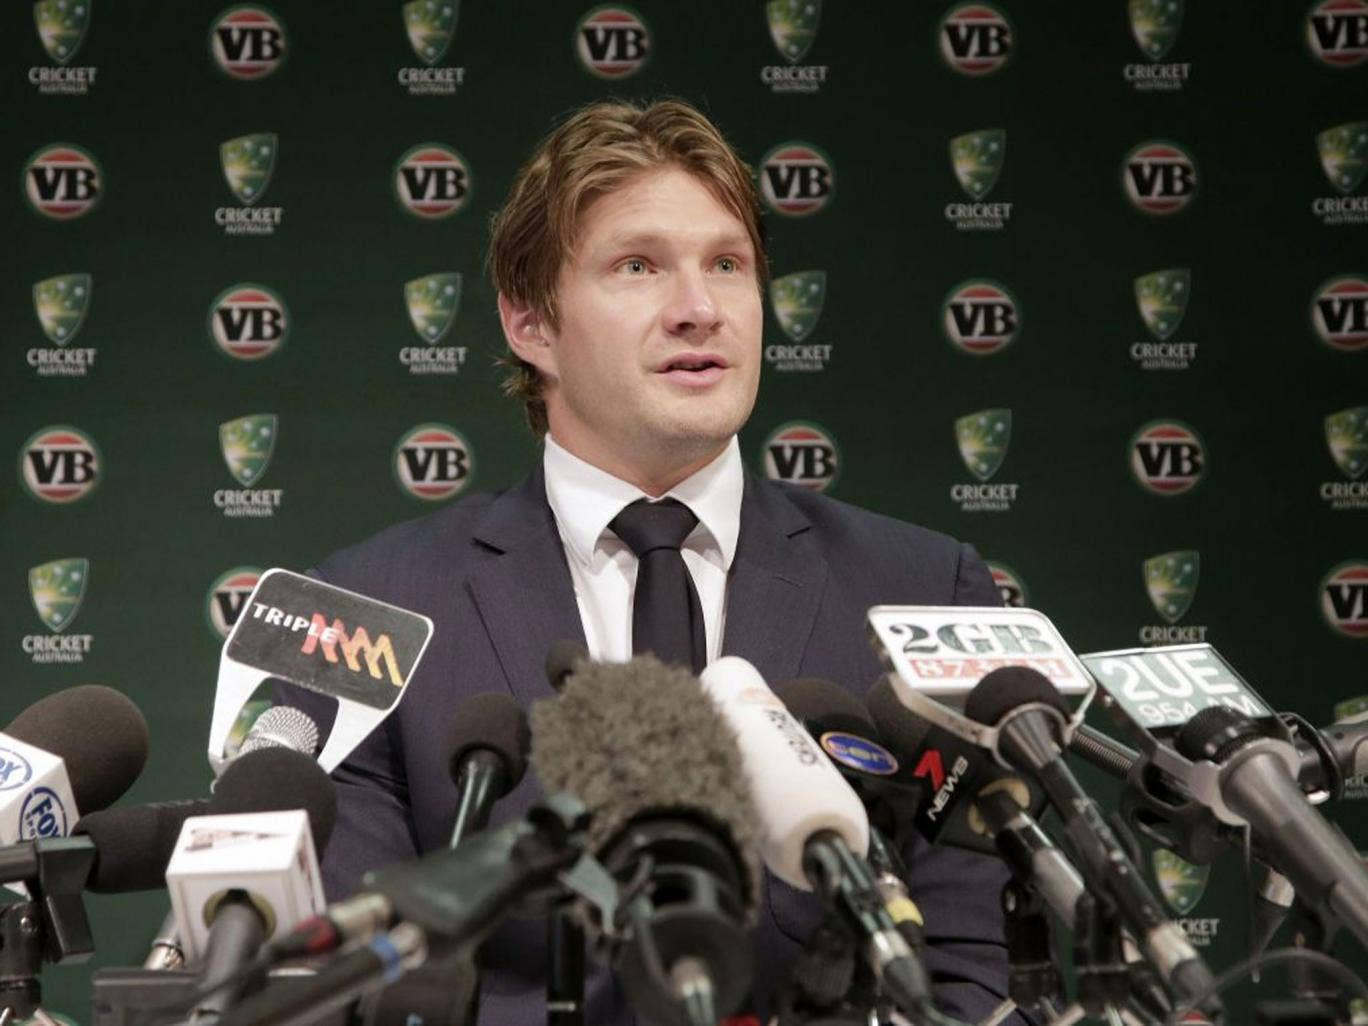 Shane Watson took over the captaincy from Michael Clarke but couldn't stop his side's decline